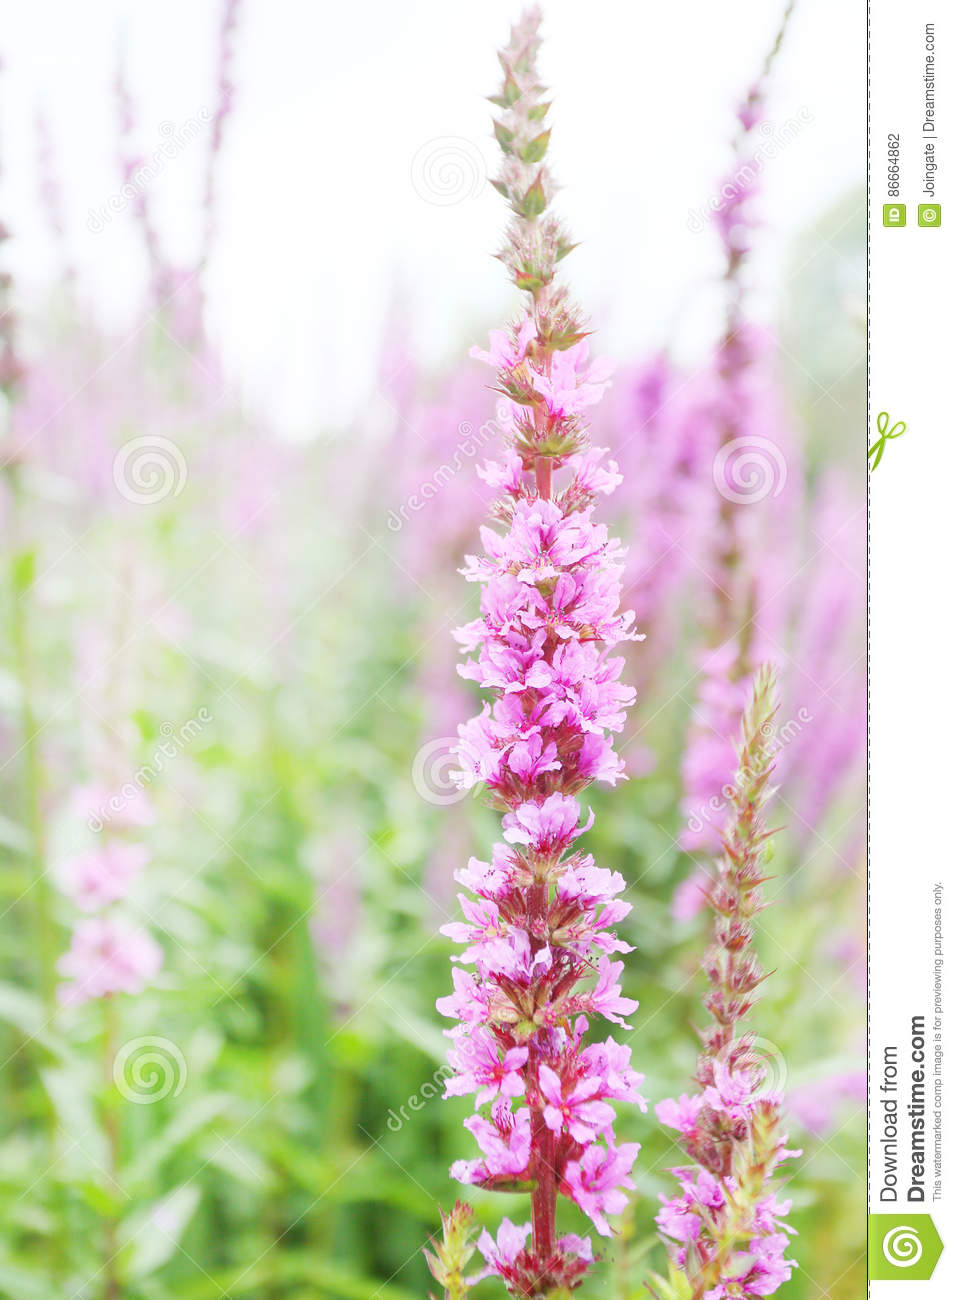 Tall Pink Flower With Many Buds Similar To Foxglove Stock Photo